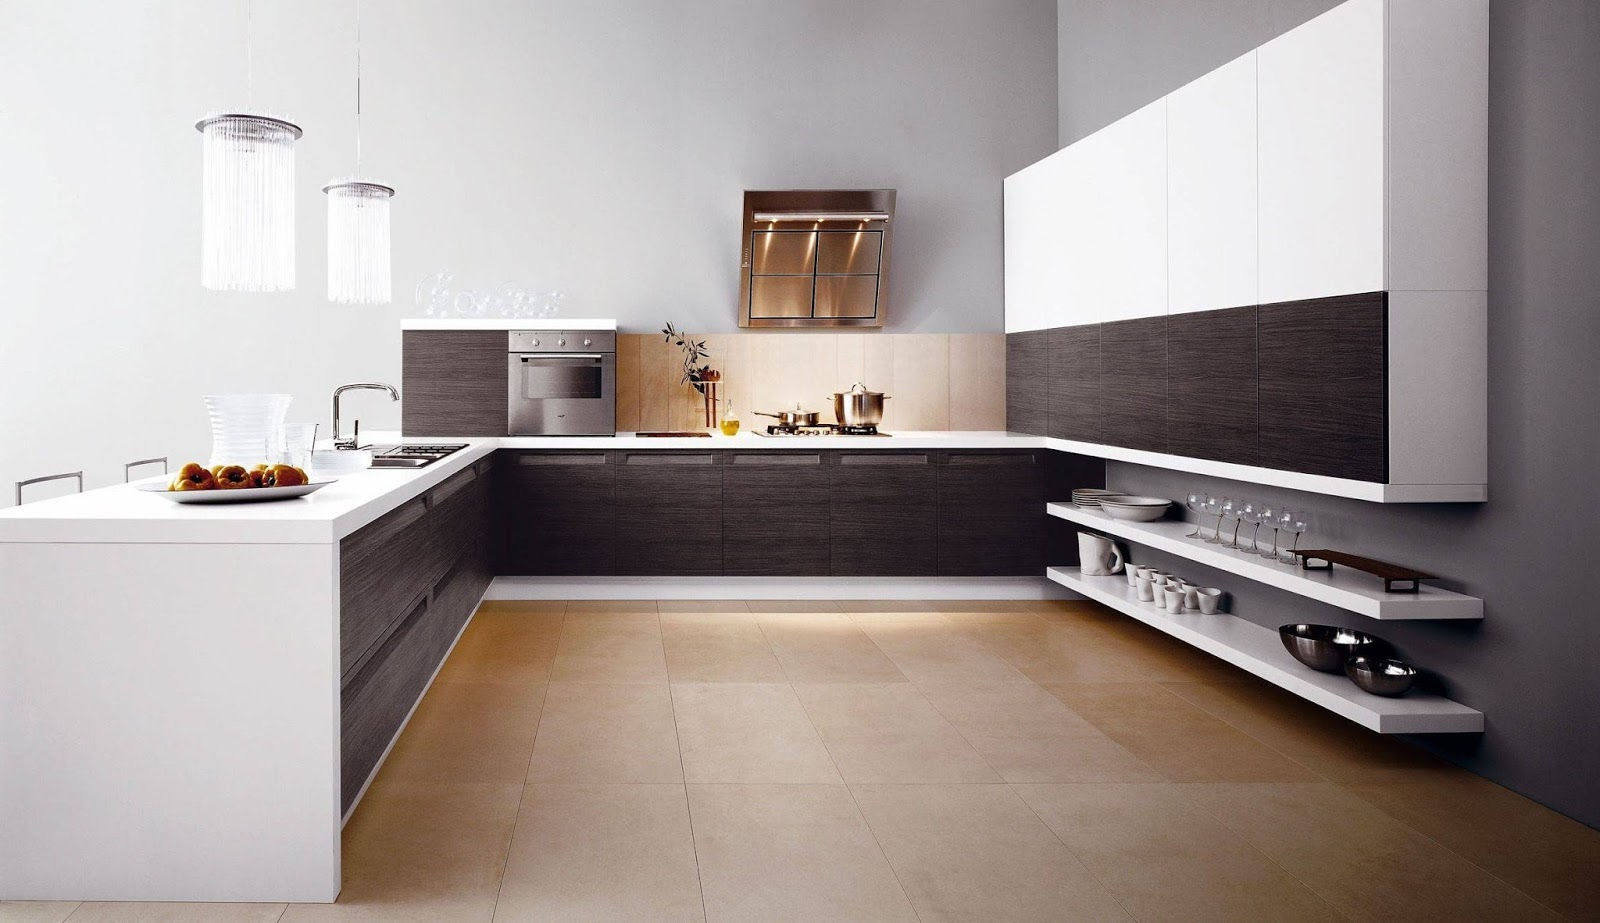 Modern Italian Kitchen Design Simple Modern Kitchen Design With Italian Themes  Home Decors  Homedecors